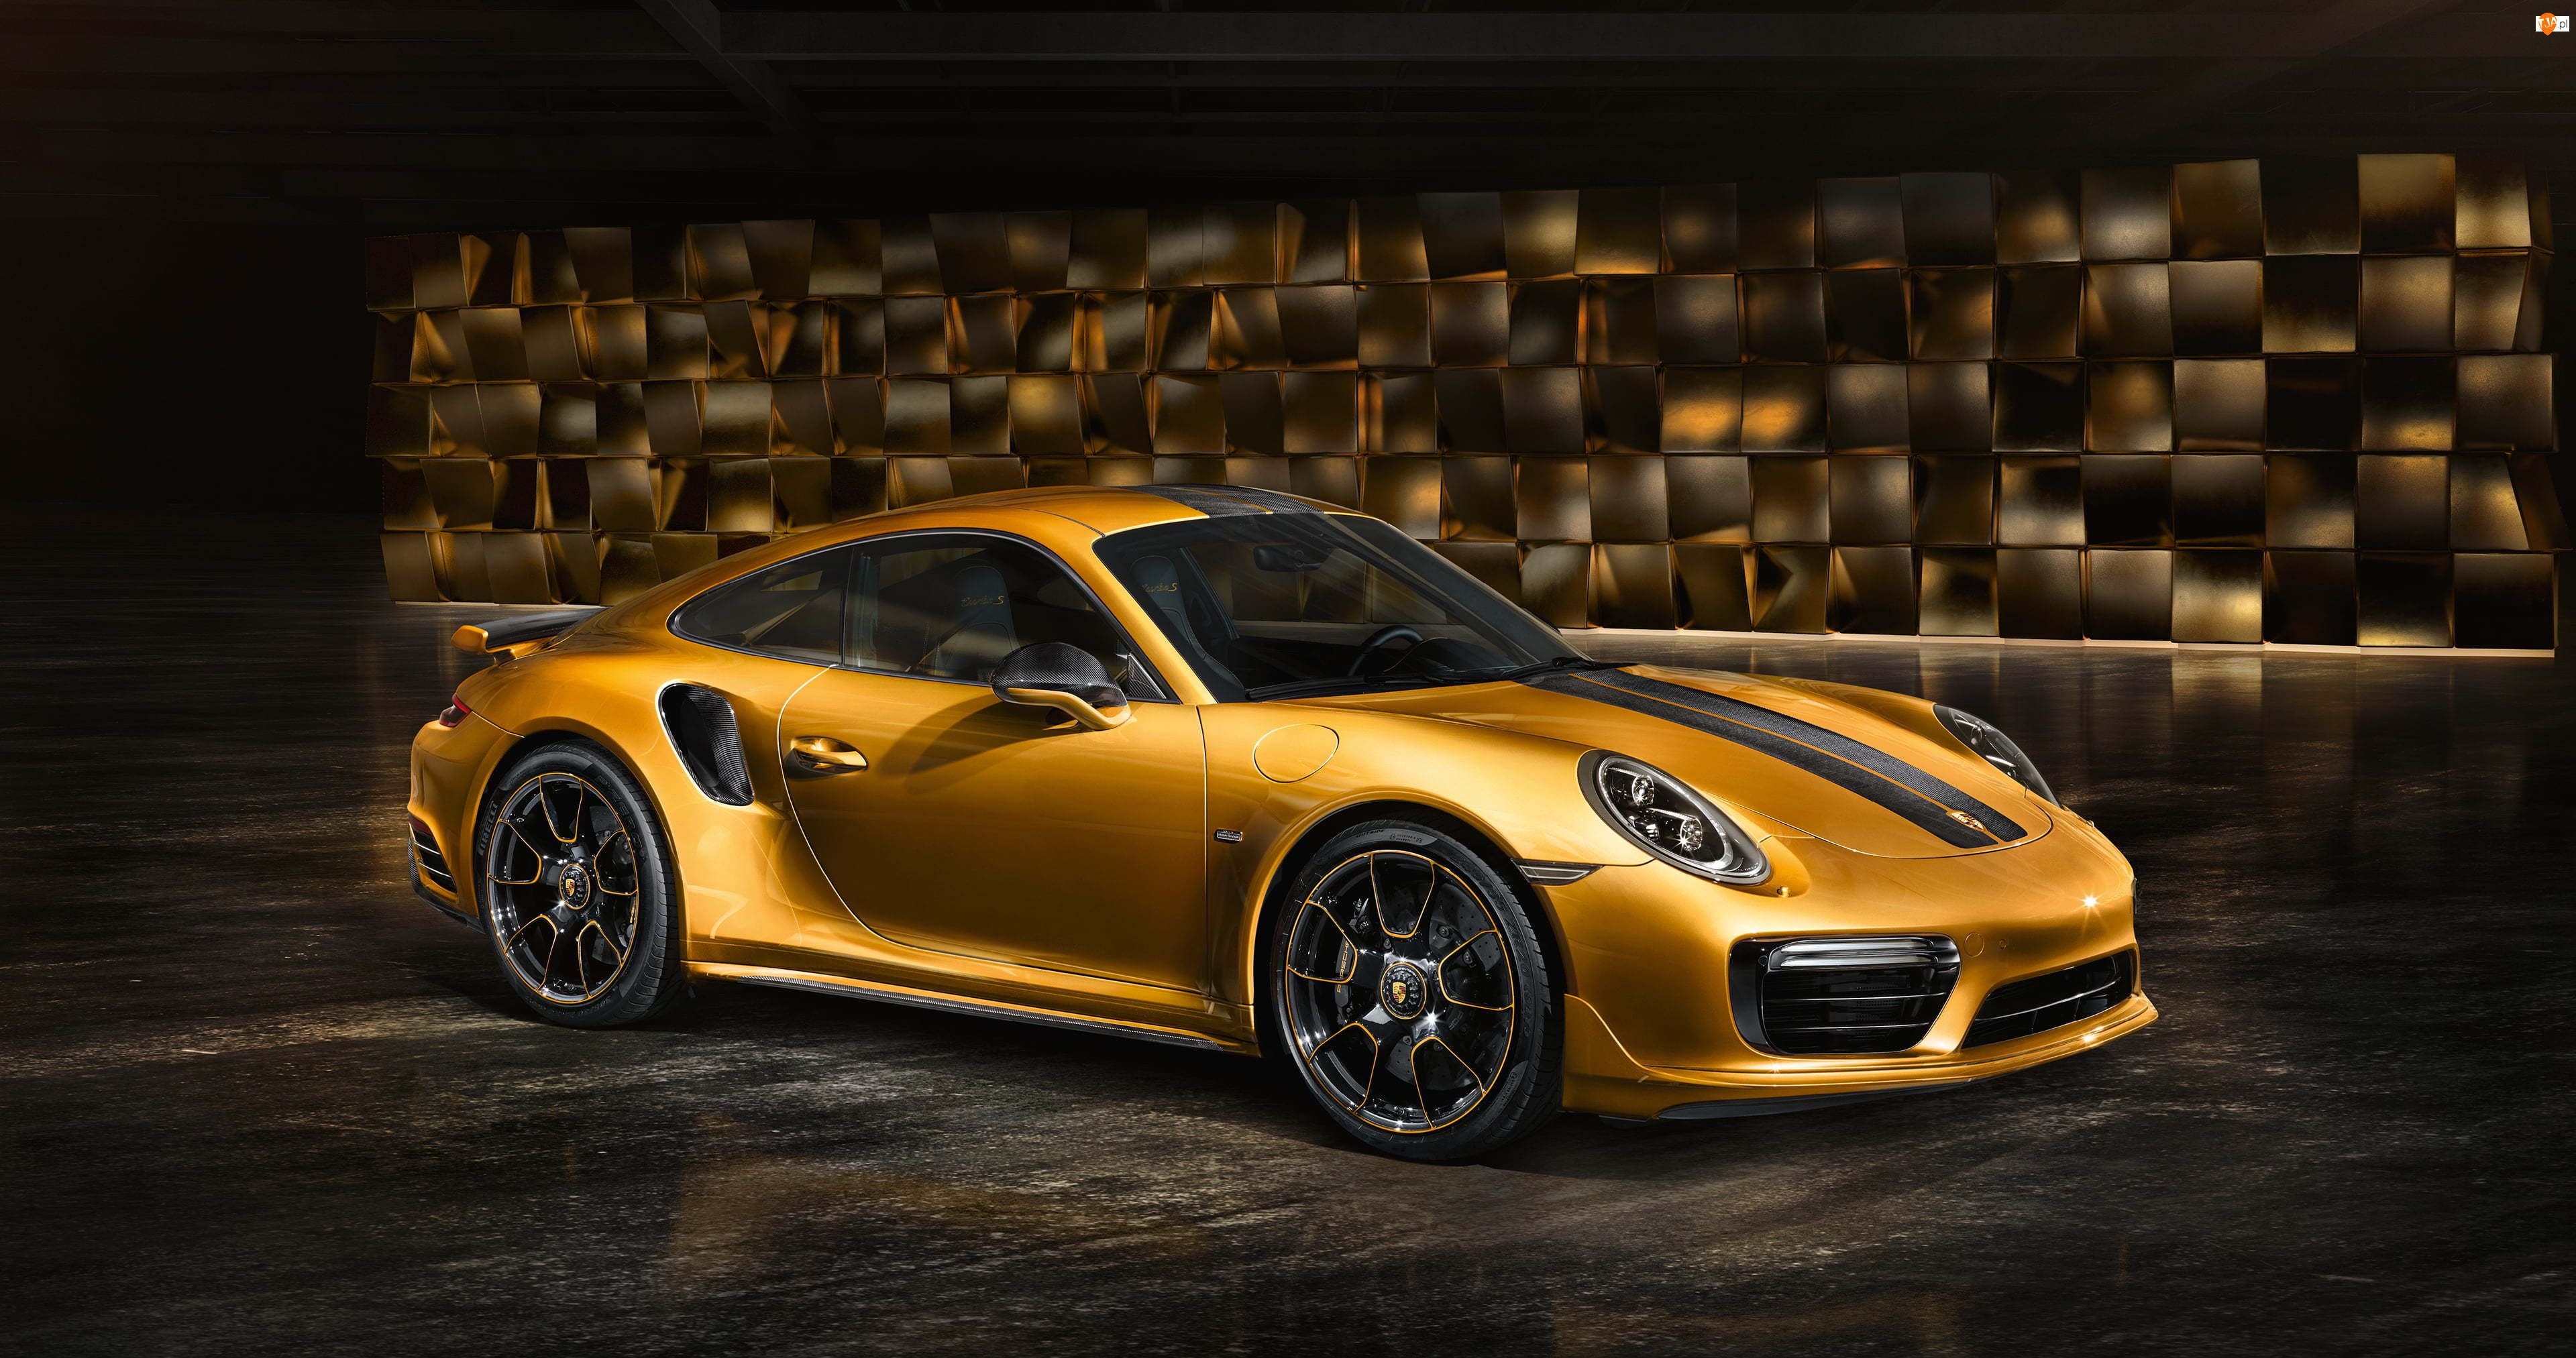 2018, Porsche 911 Turbo S Exclusive Series